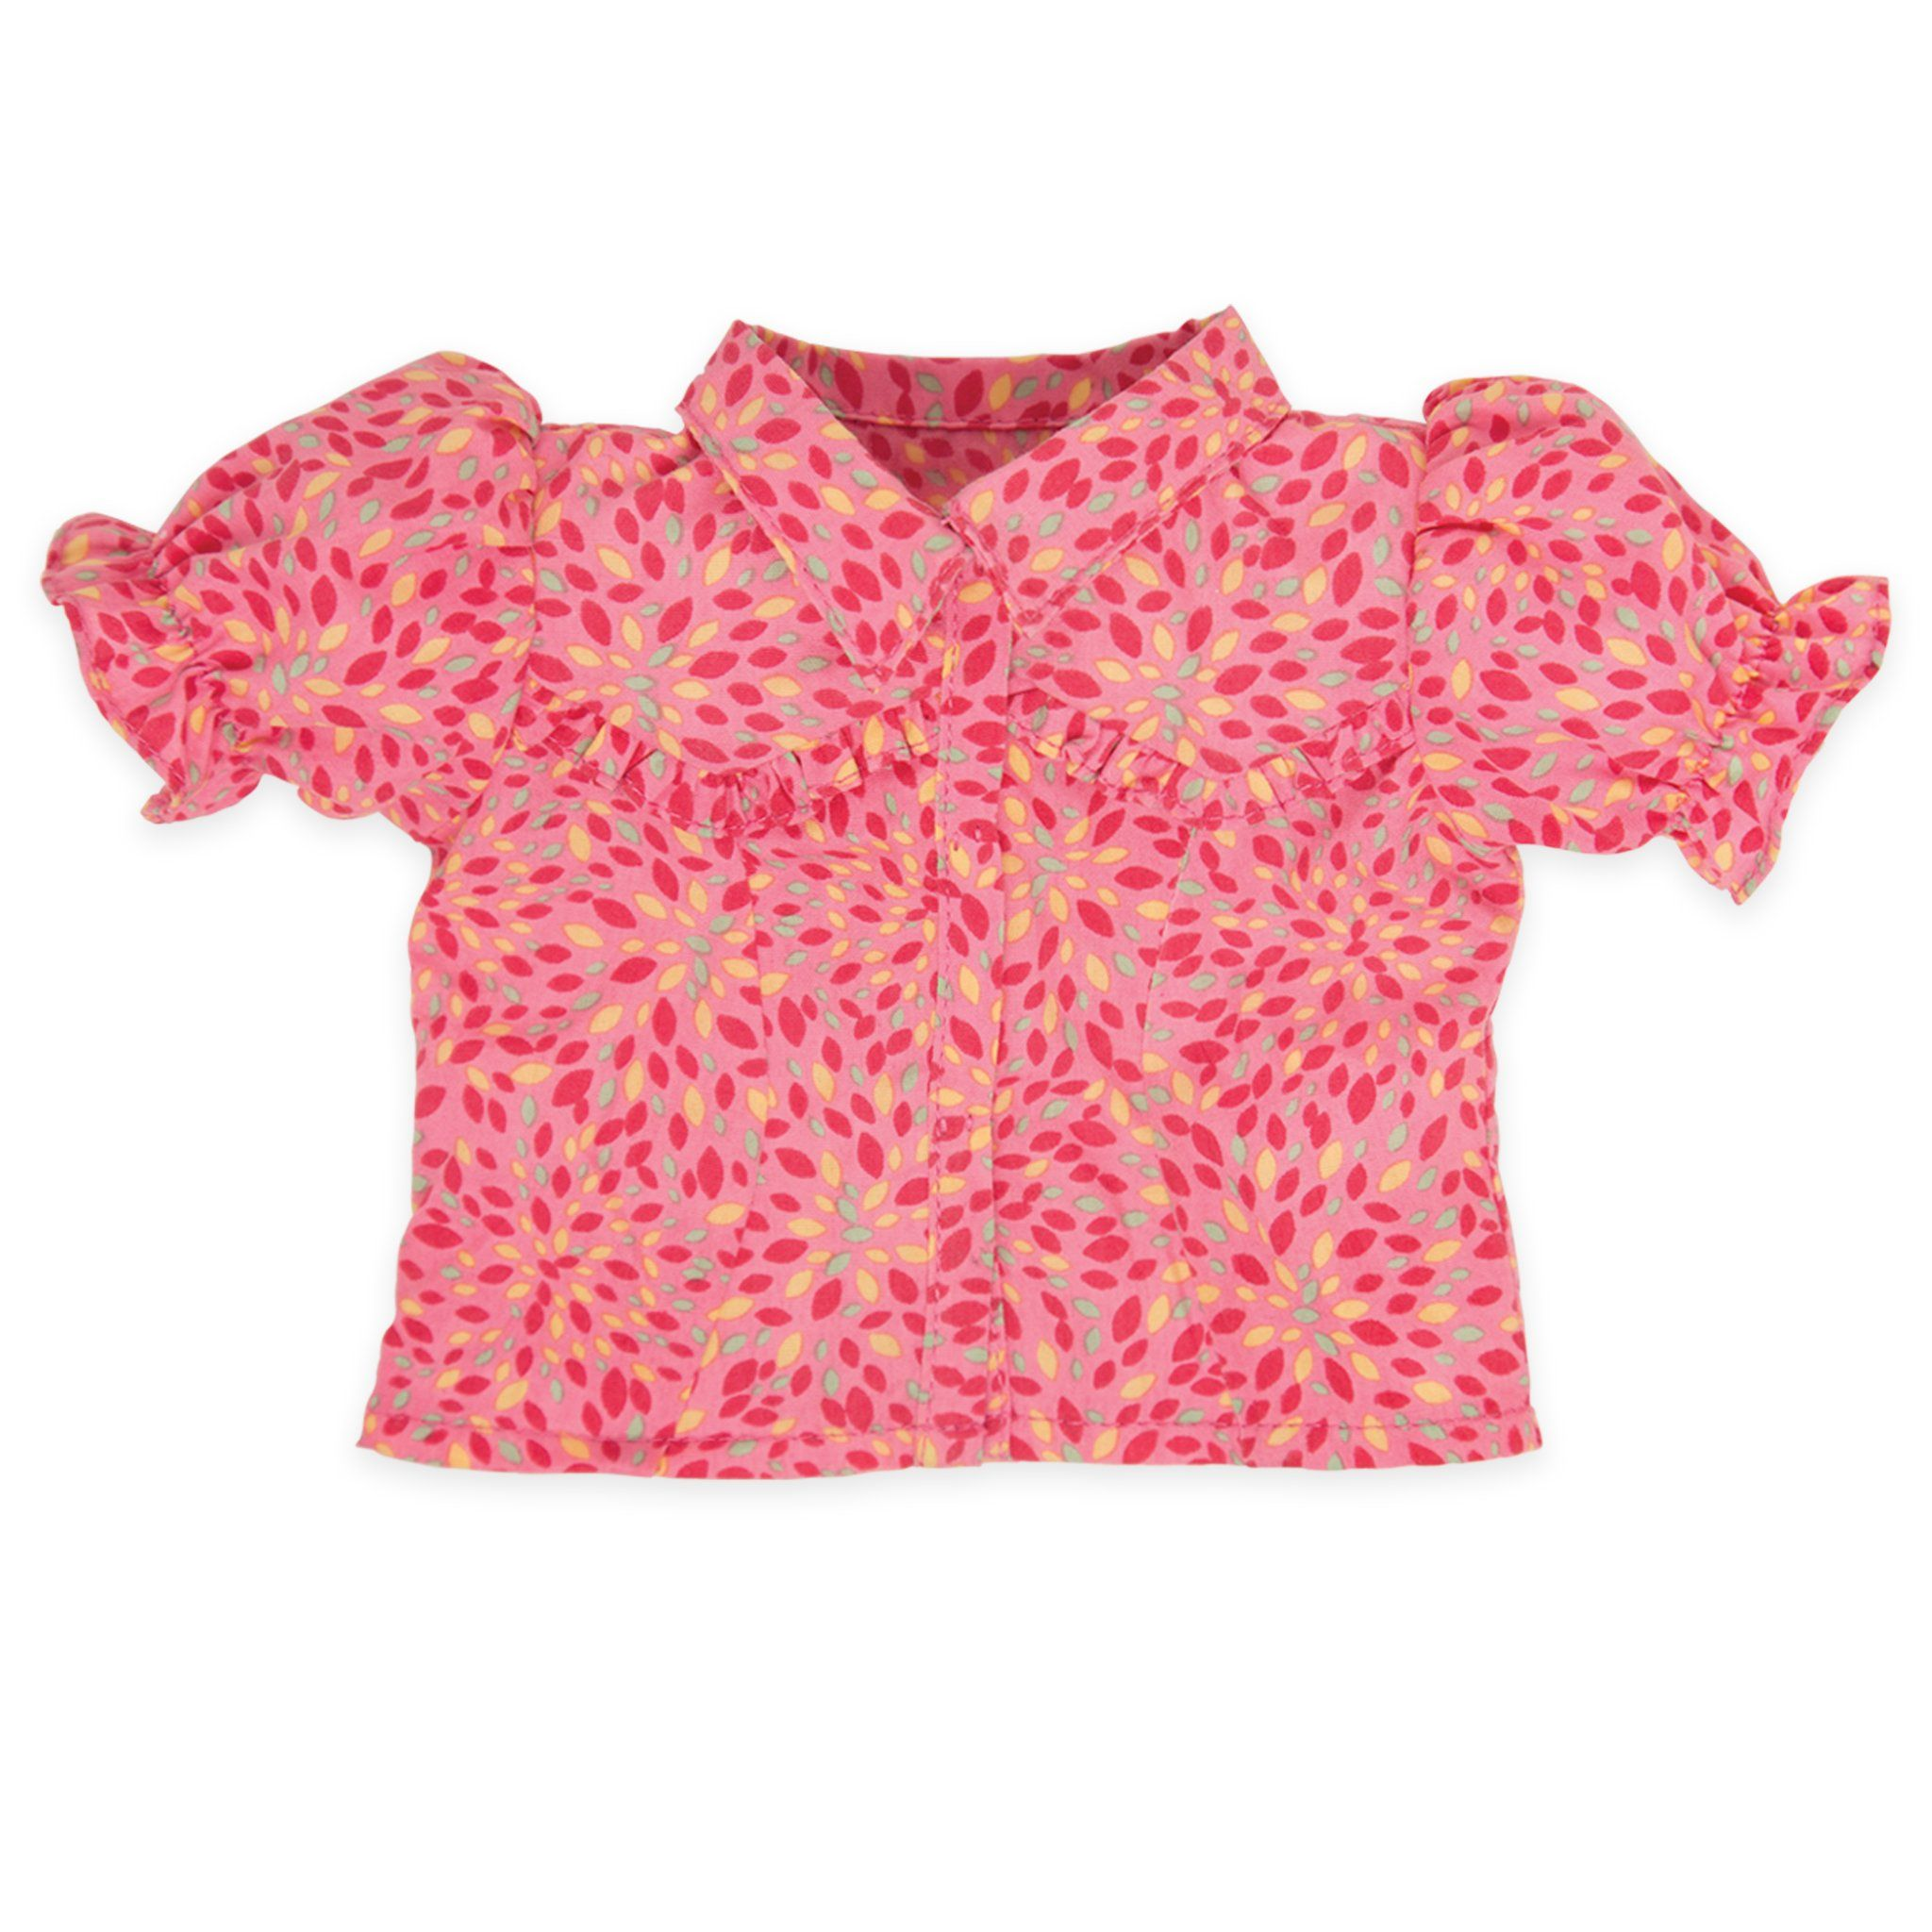 Brianne's starter outfit pink patterned blouse fits all 18 inch dolls.